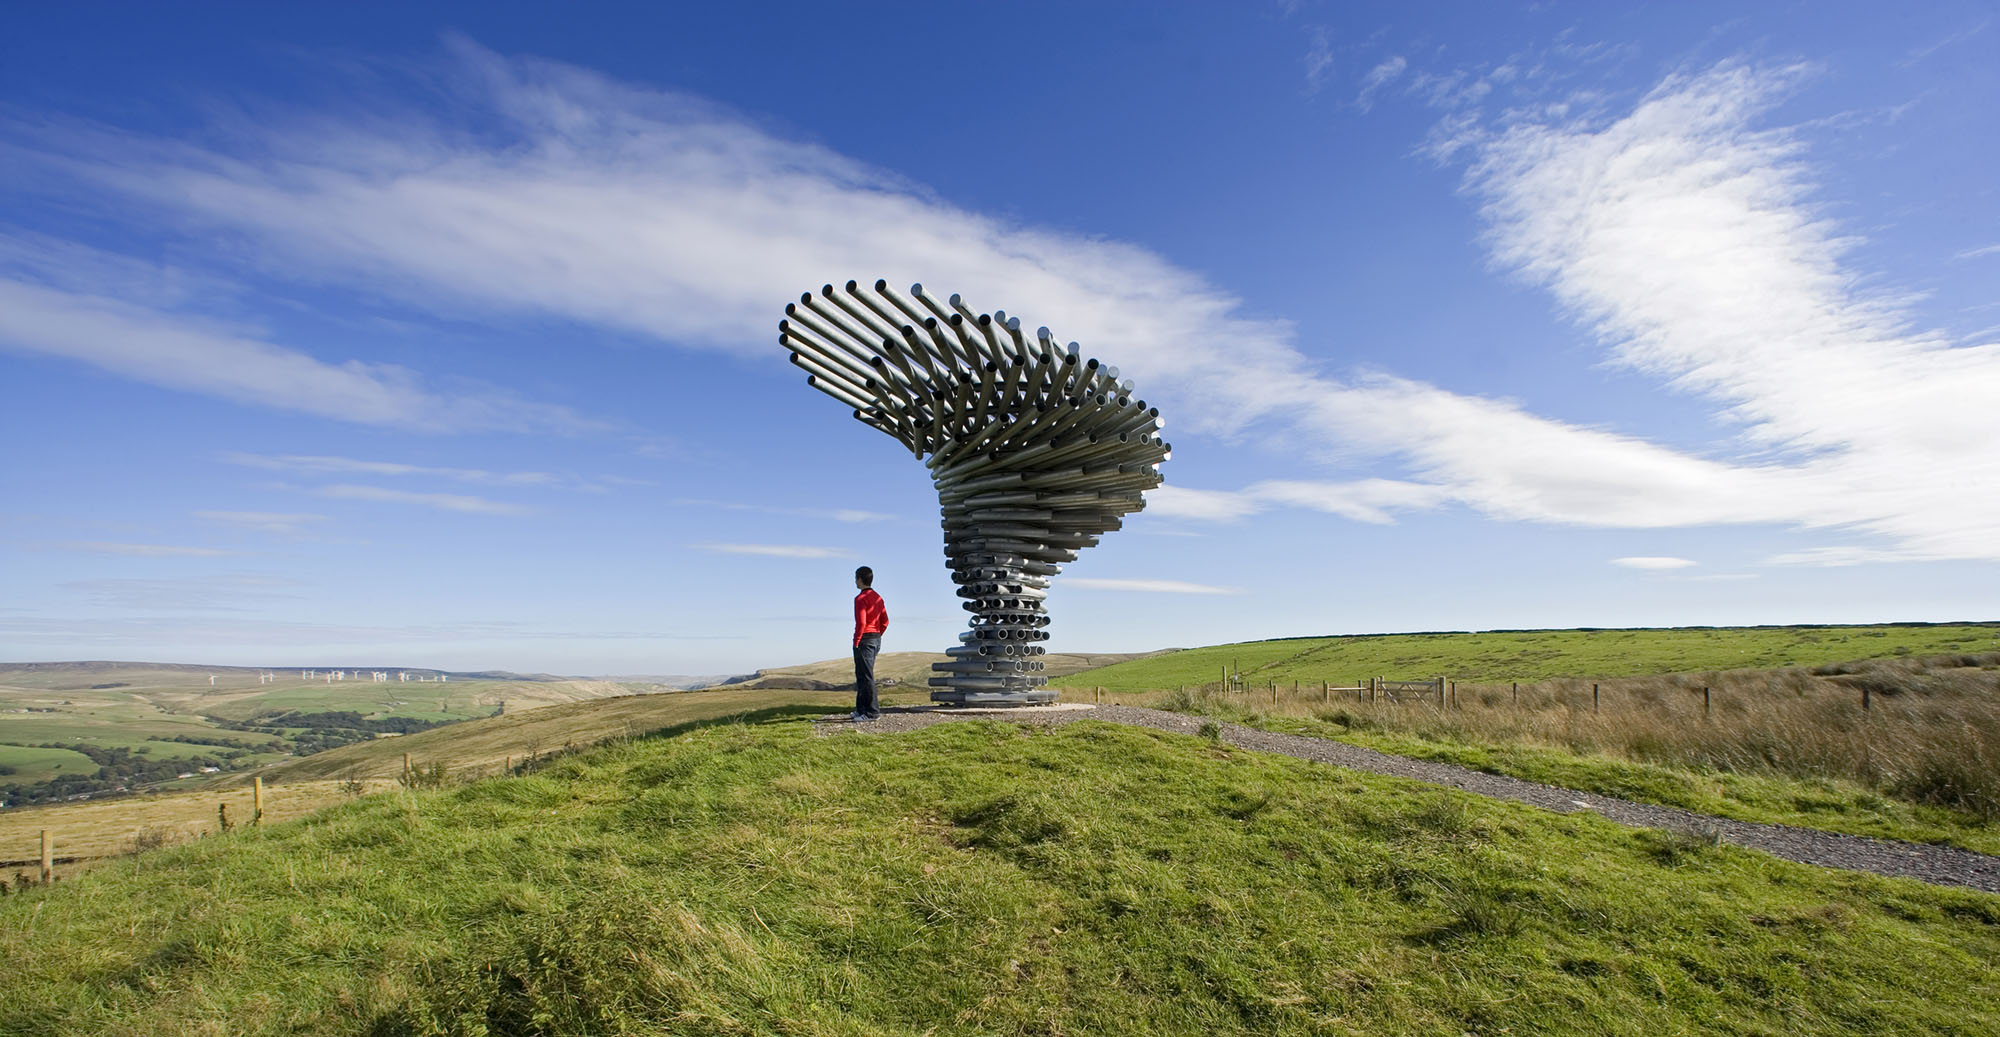 Singing-Ringing-Tree-designed-by-Tonkin-Liu-2006-commissioned-by-Mid-Pennine-Arts.-Photo-Ian-Lawson